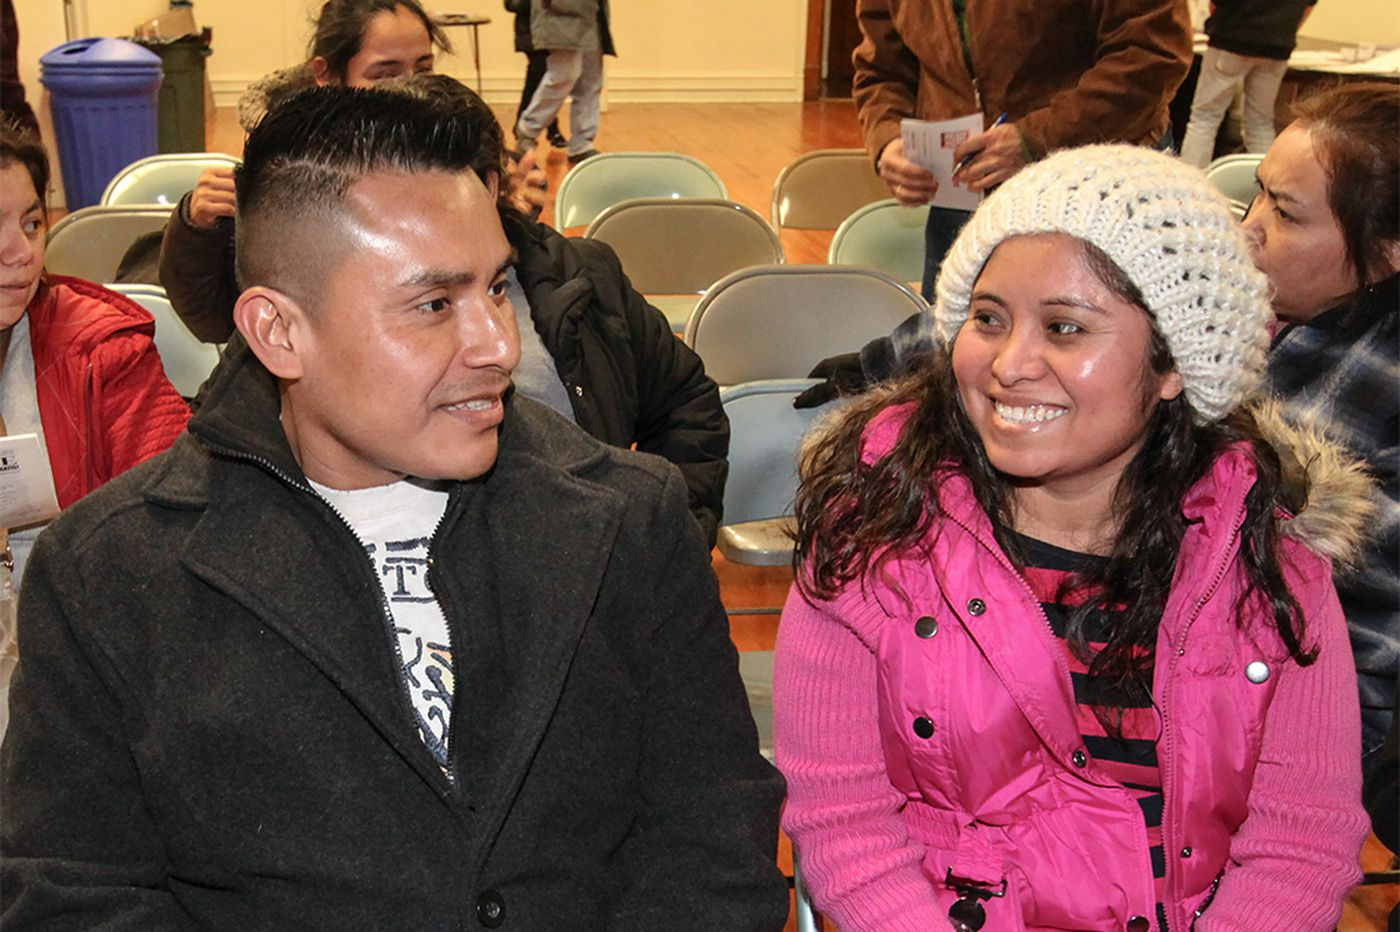 Undocumented immigrants get details at Chesco meeting